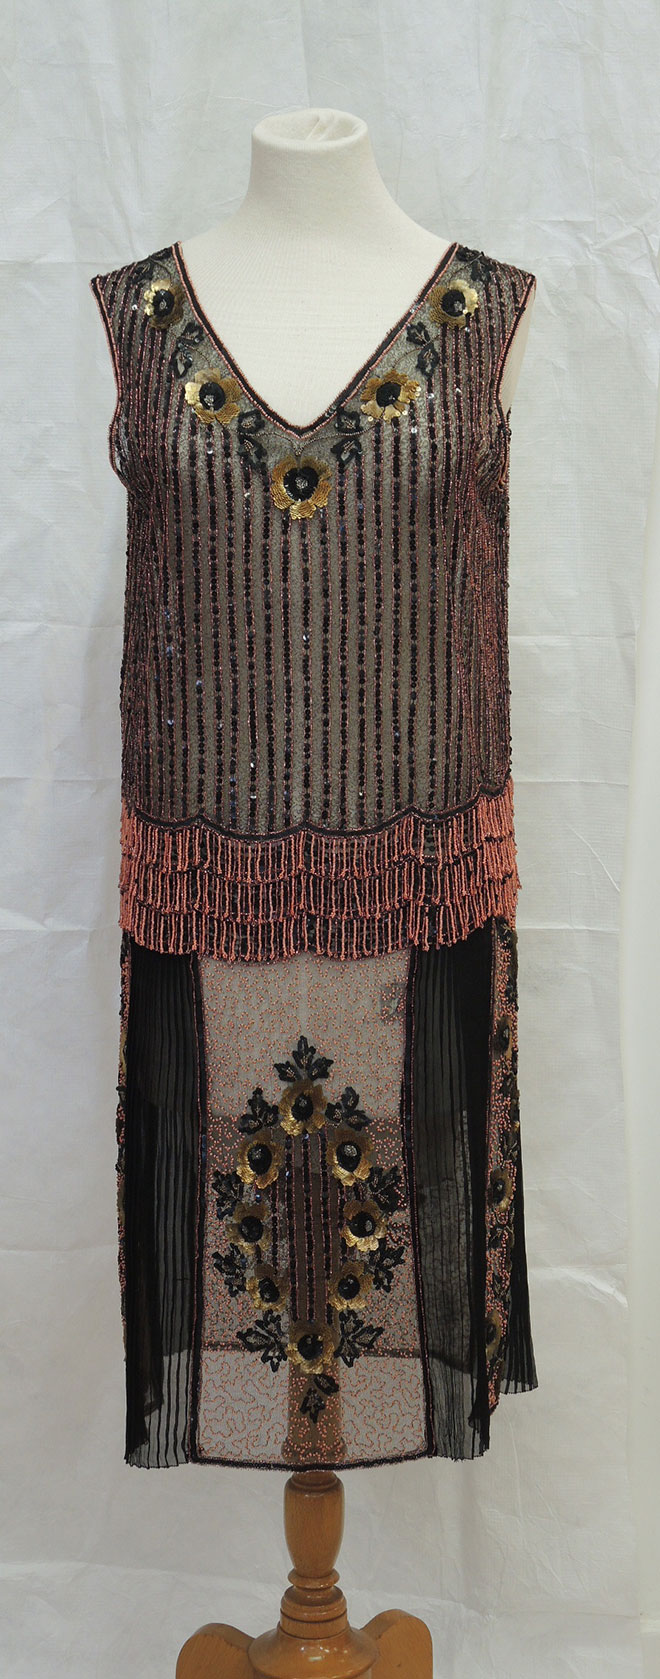 The beaded dress after conservation.